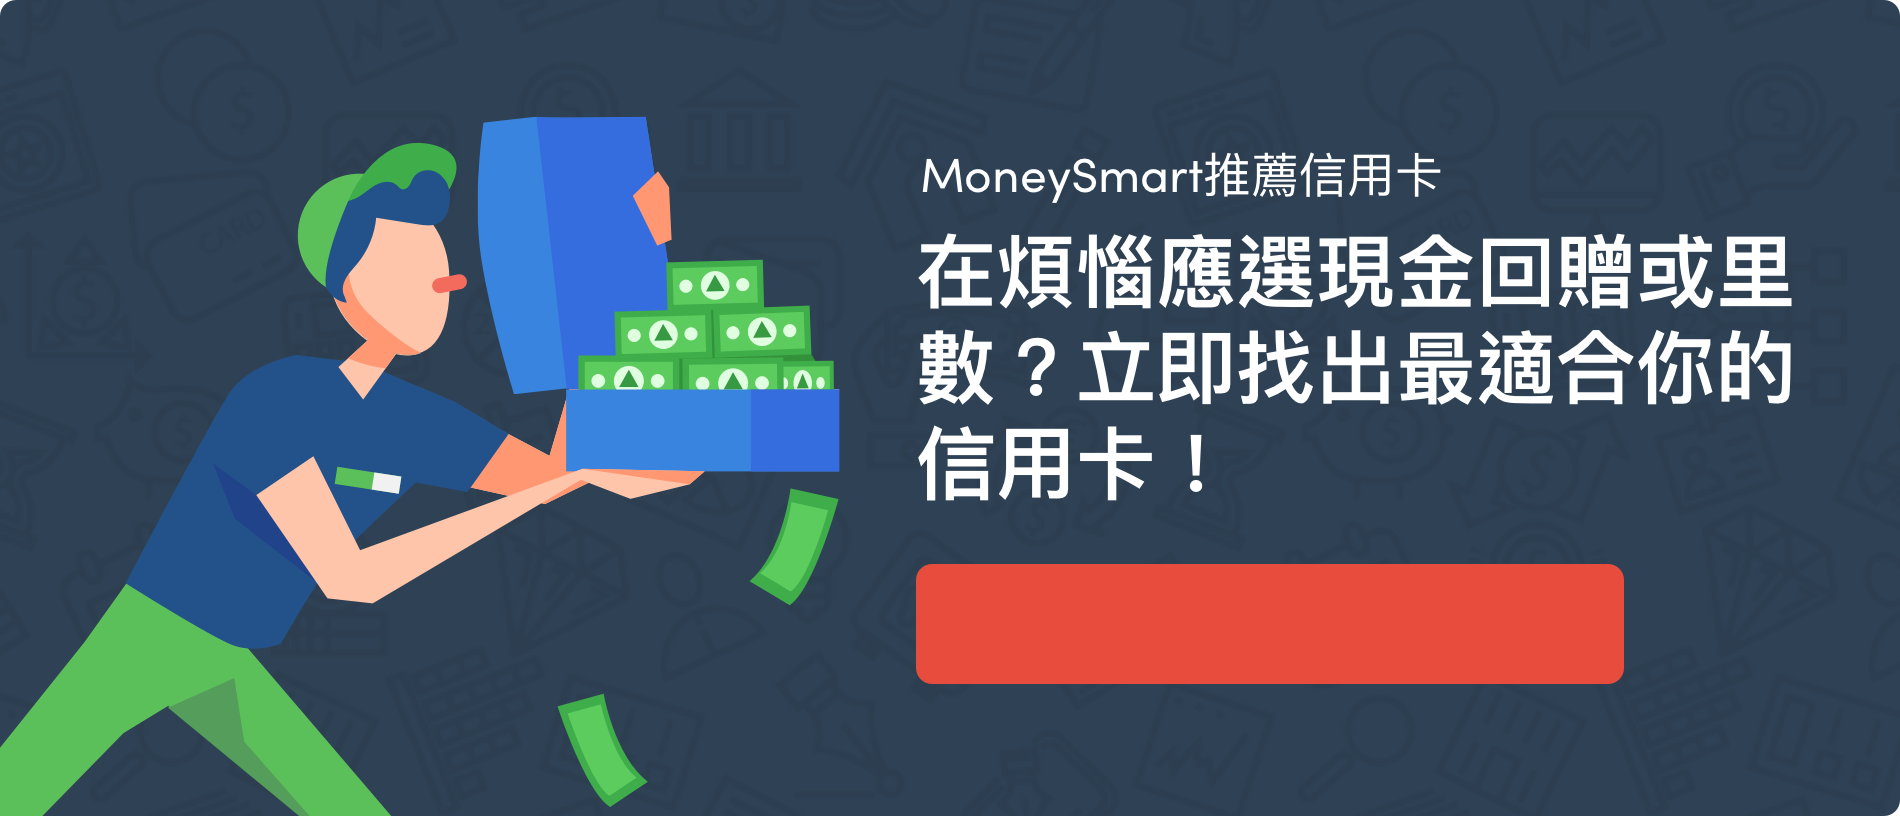 https://blog-cdn.moneysmart.hk/wp-content/uploads/2019/04/widget-desktop-credit-card.png